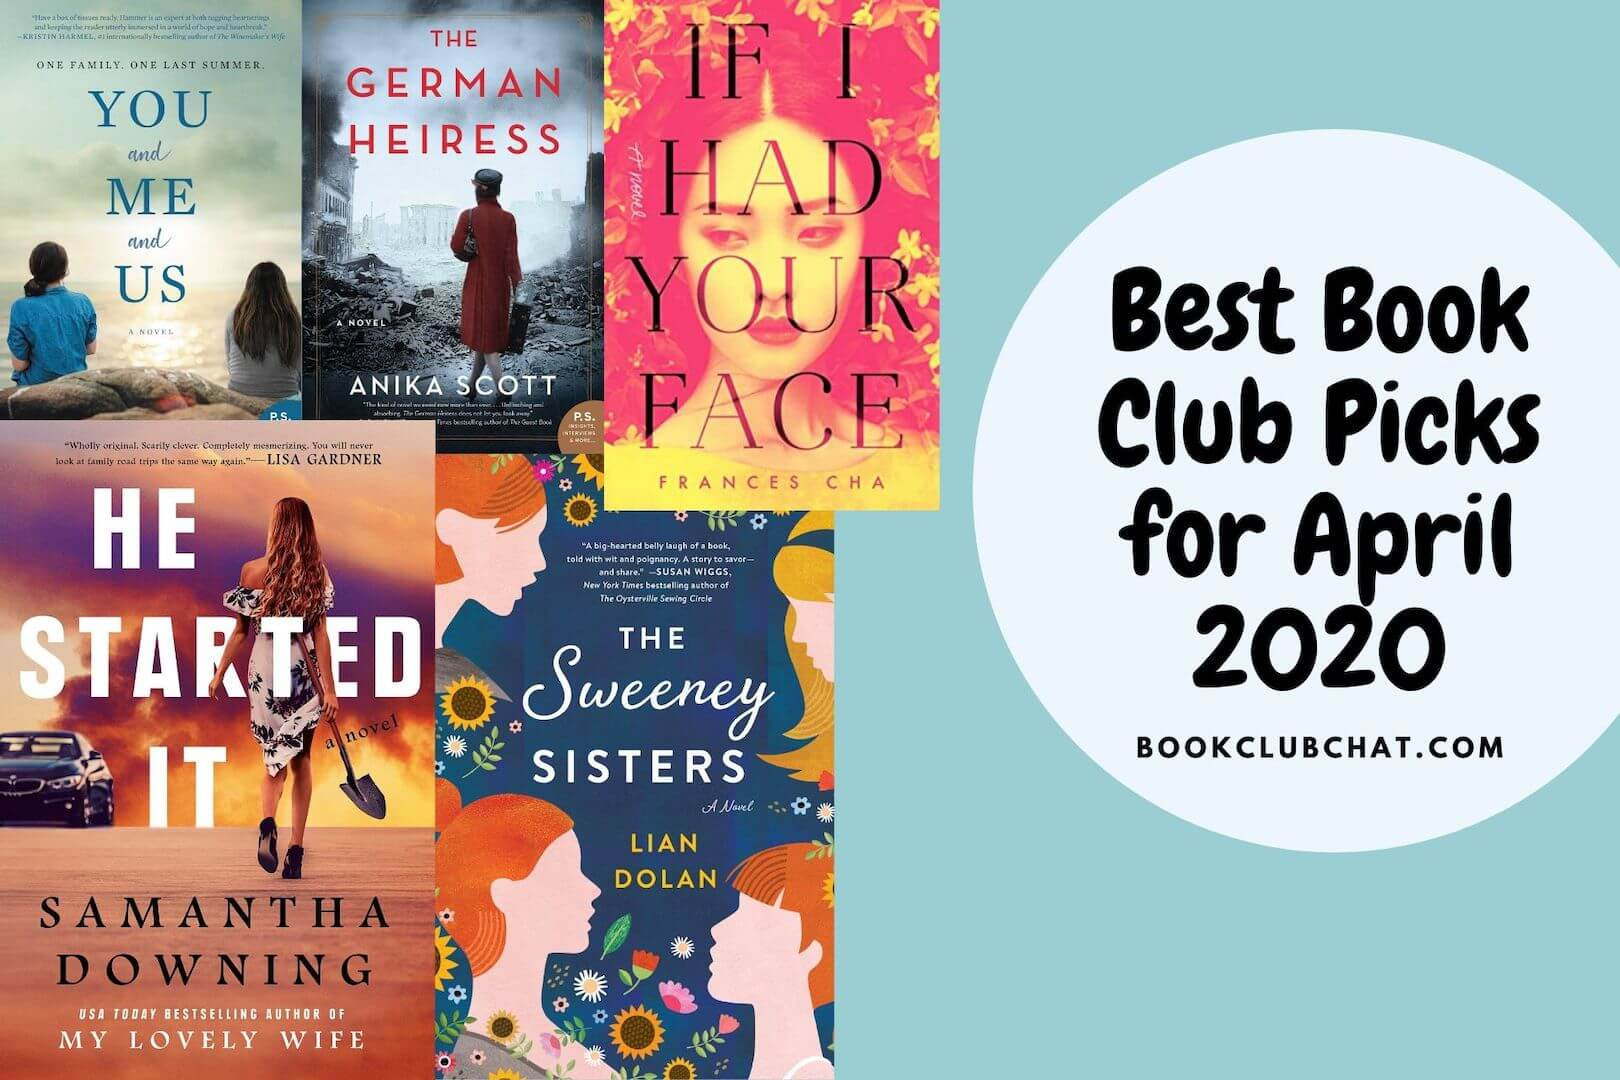 Best Book Club Picks for April 2020 - book club chat